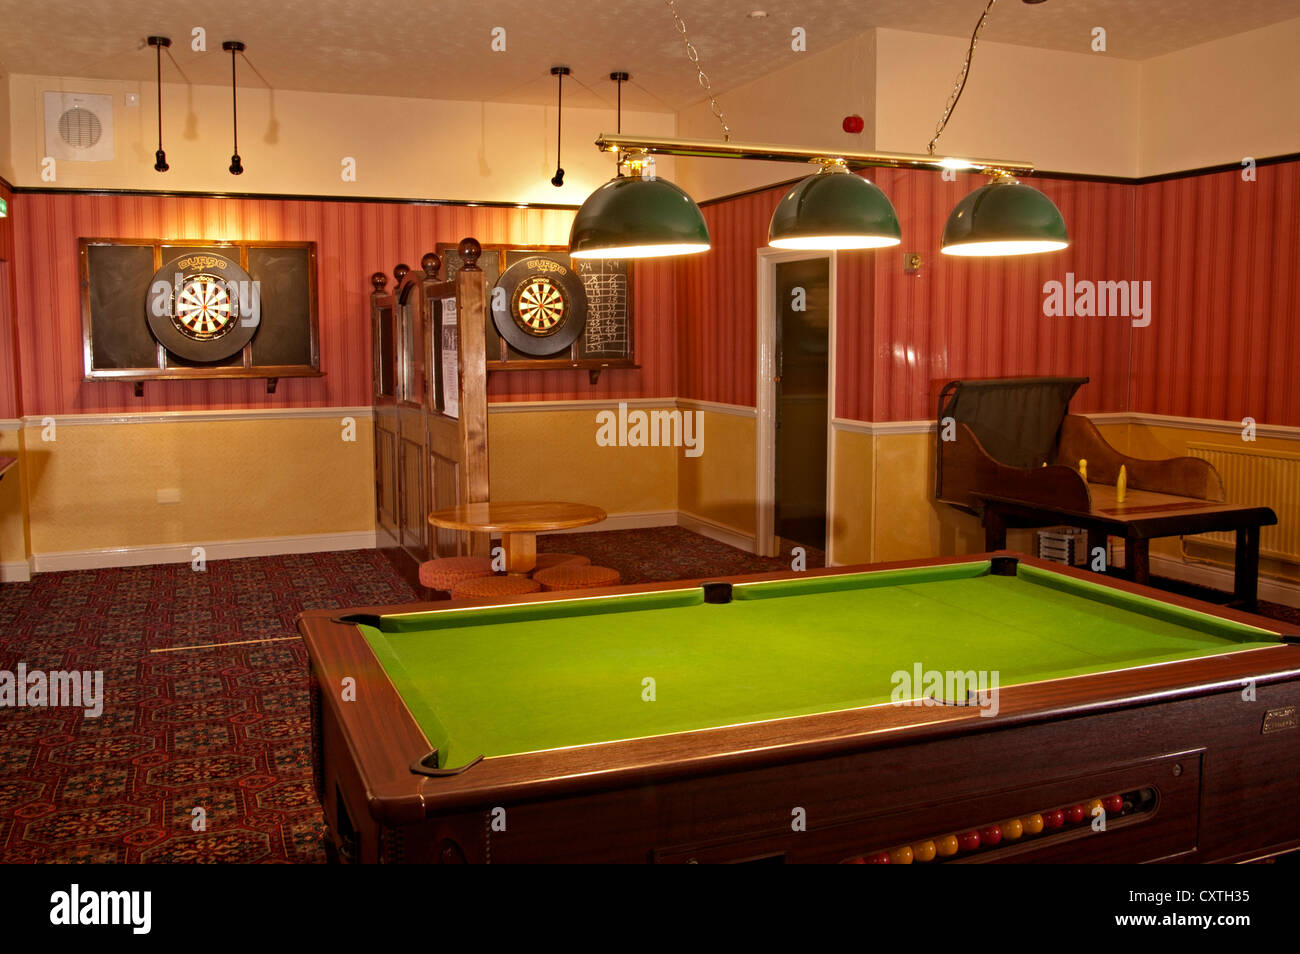 The New Market Pub Games Room With Pool Table And Darts Boards Stock